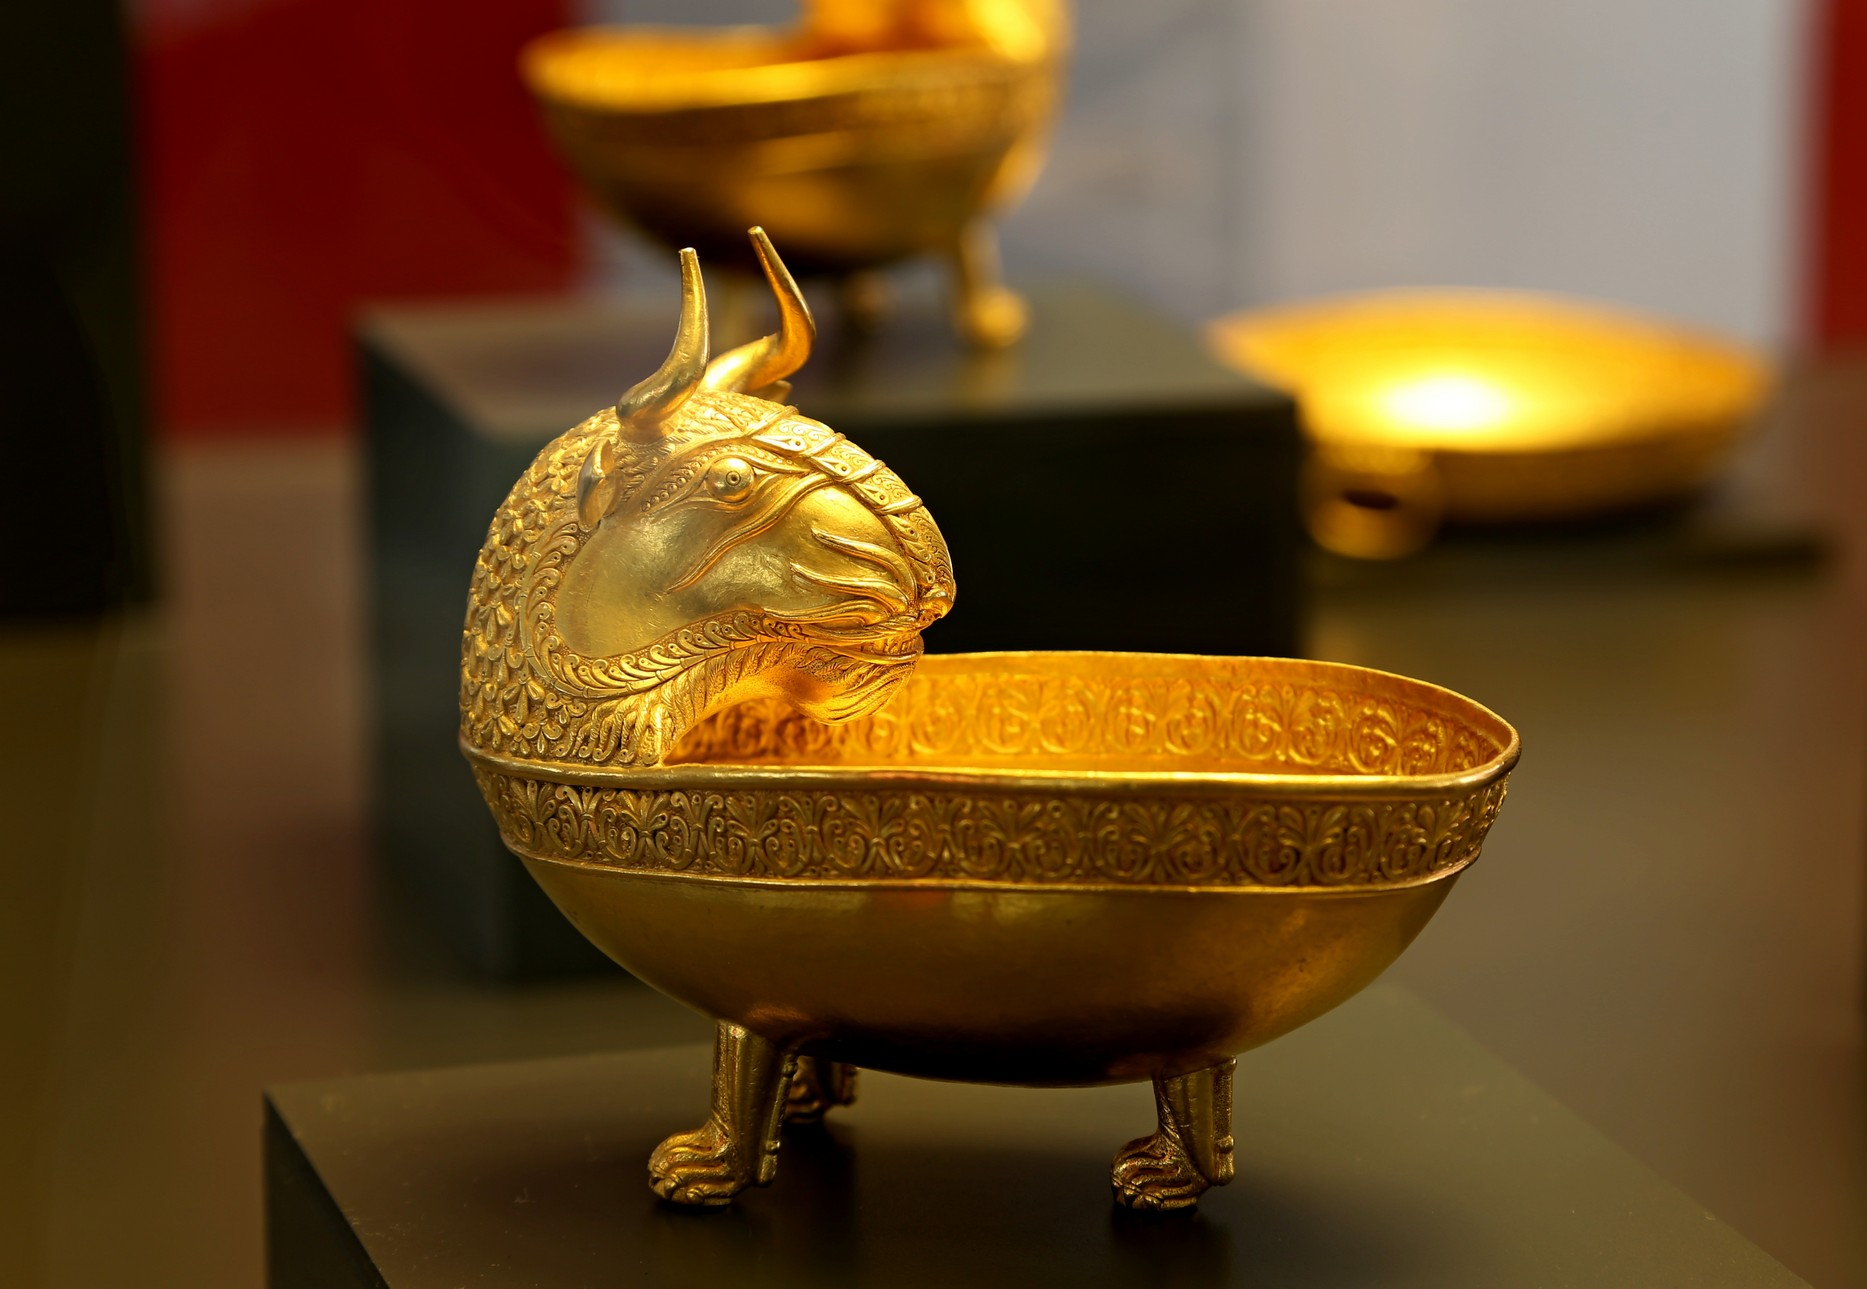 bulgaria-sofia-archaeological-museum-nagyszentmiklos-gold-treasure-romania-vii-ix-c-bc-photo-piergiorgio-pescali-9a